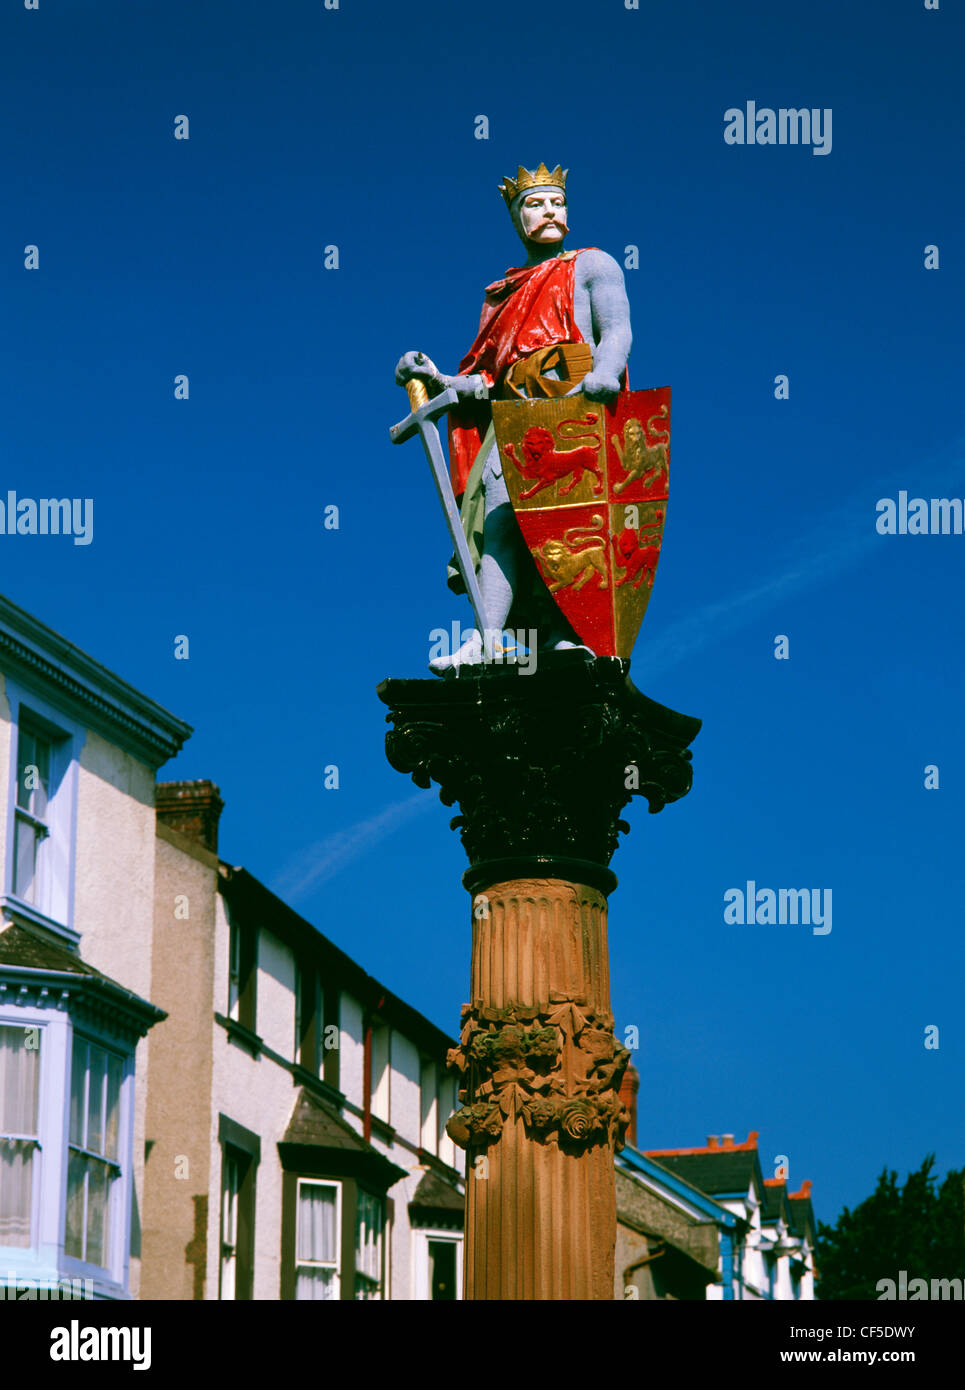 Brightly painted statue of the Medieval Welsh Prince Llywelyn ab Iorwerth (Llywelyn Fawr) on top of a column in - Stock Image